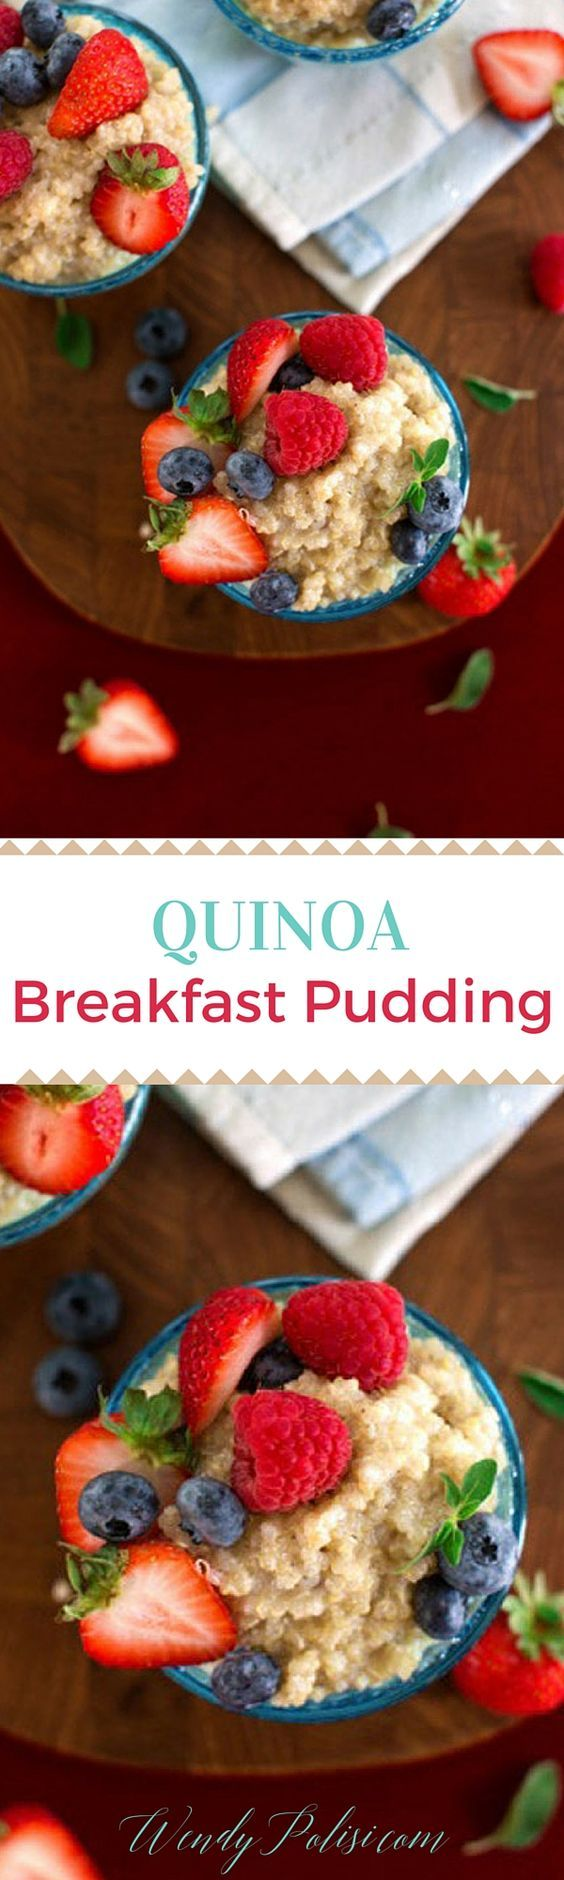 Quinoa Breakfast Pudding - This quinoa breakfast pudding is the perfect healthy recipe to start your day off right.  Gluten free and vegan, this is a meal you can feel good about.